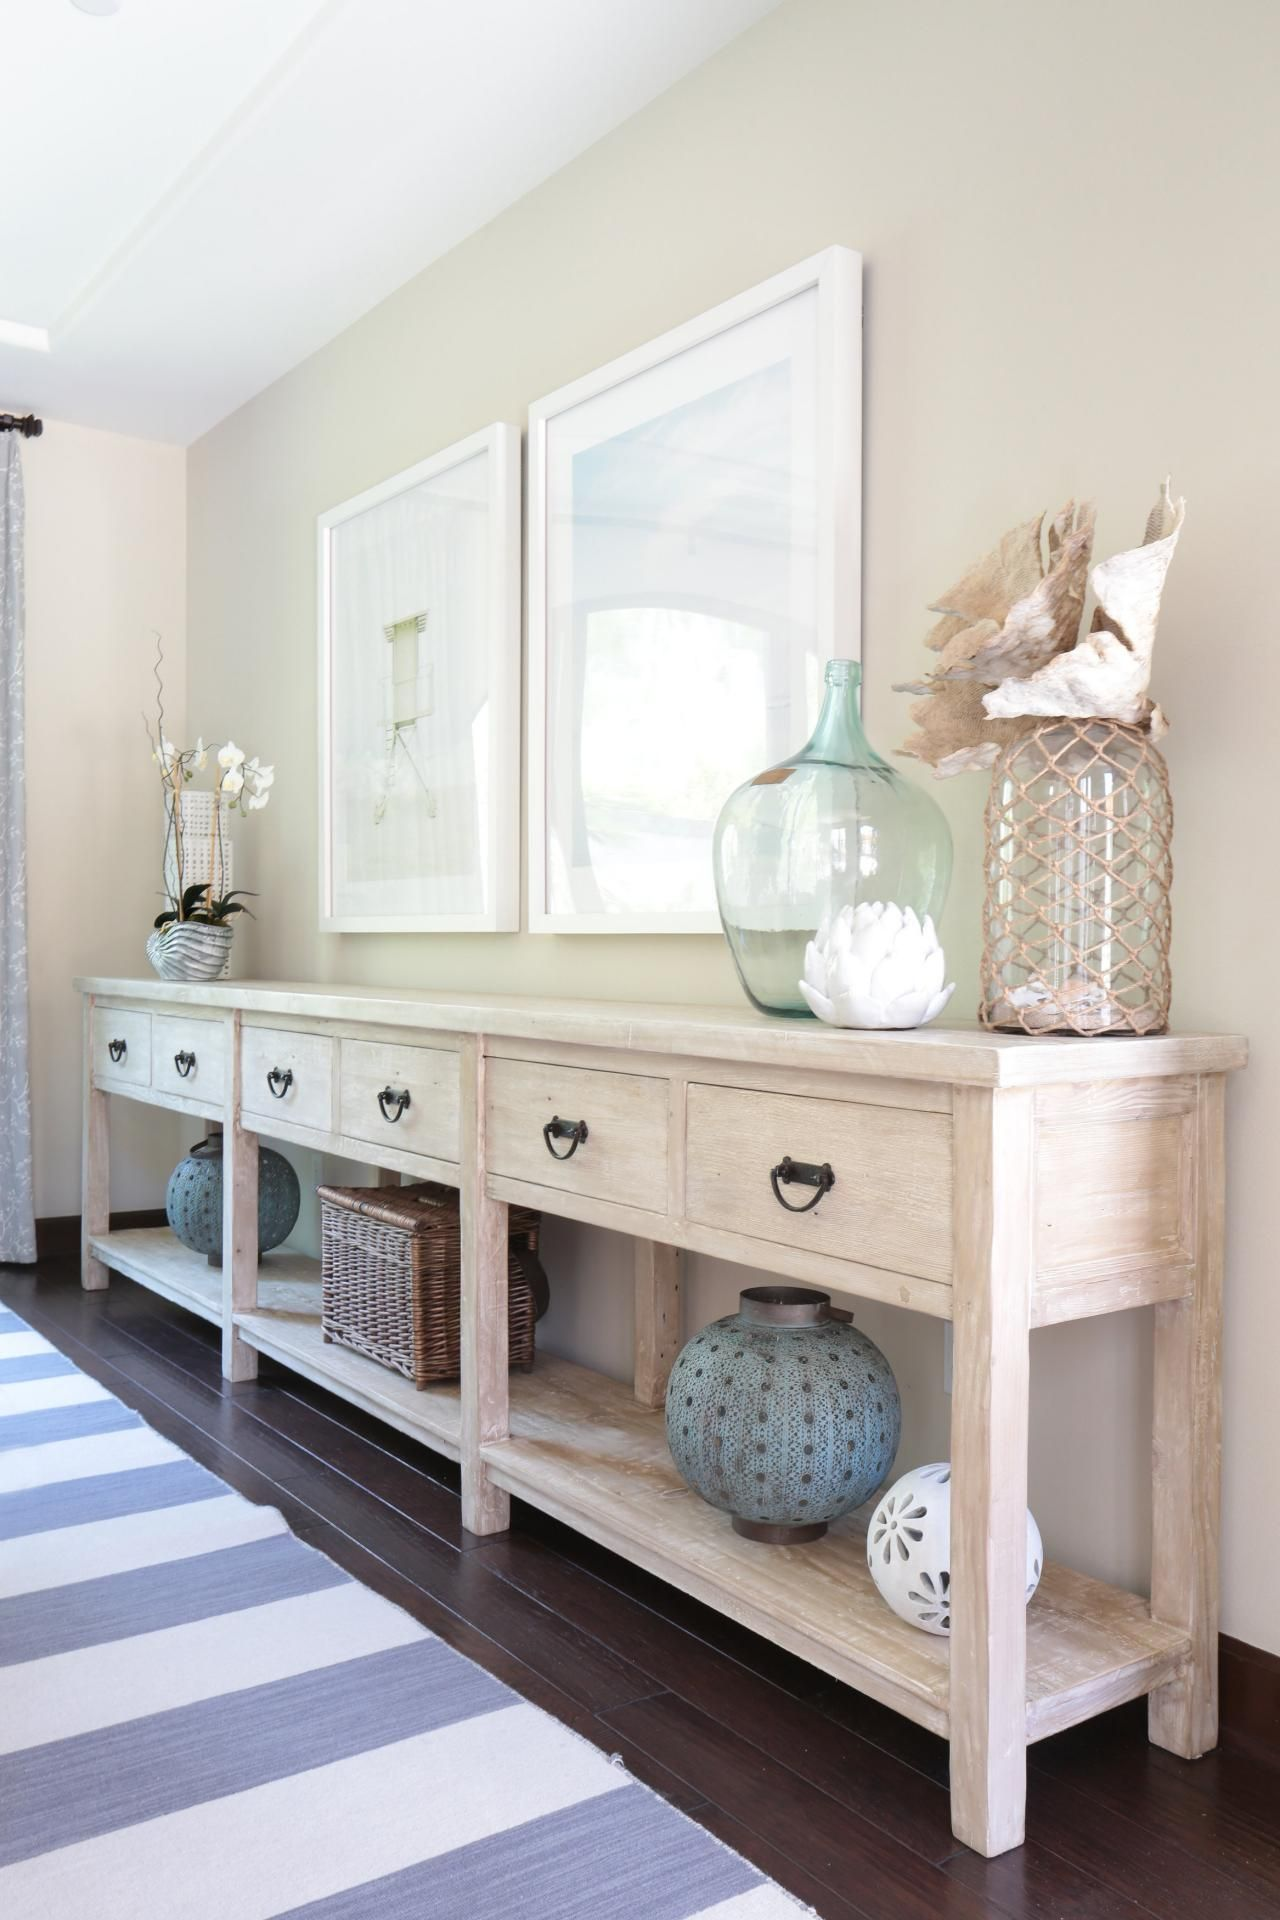 HGTV features a transitional coastal neutral dining